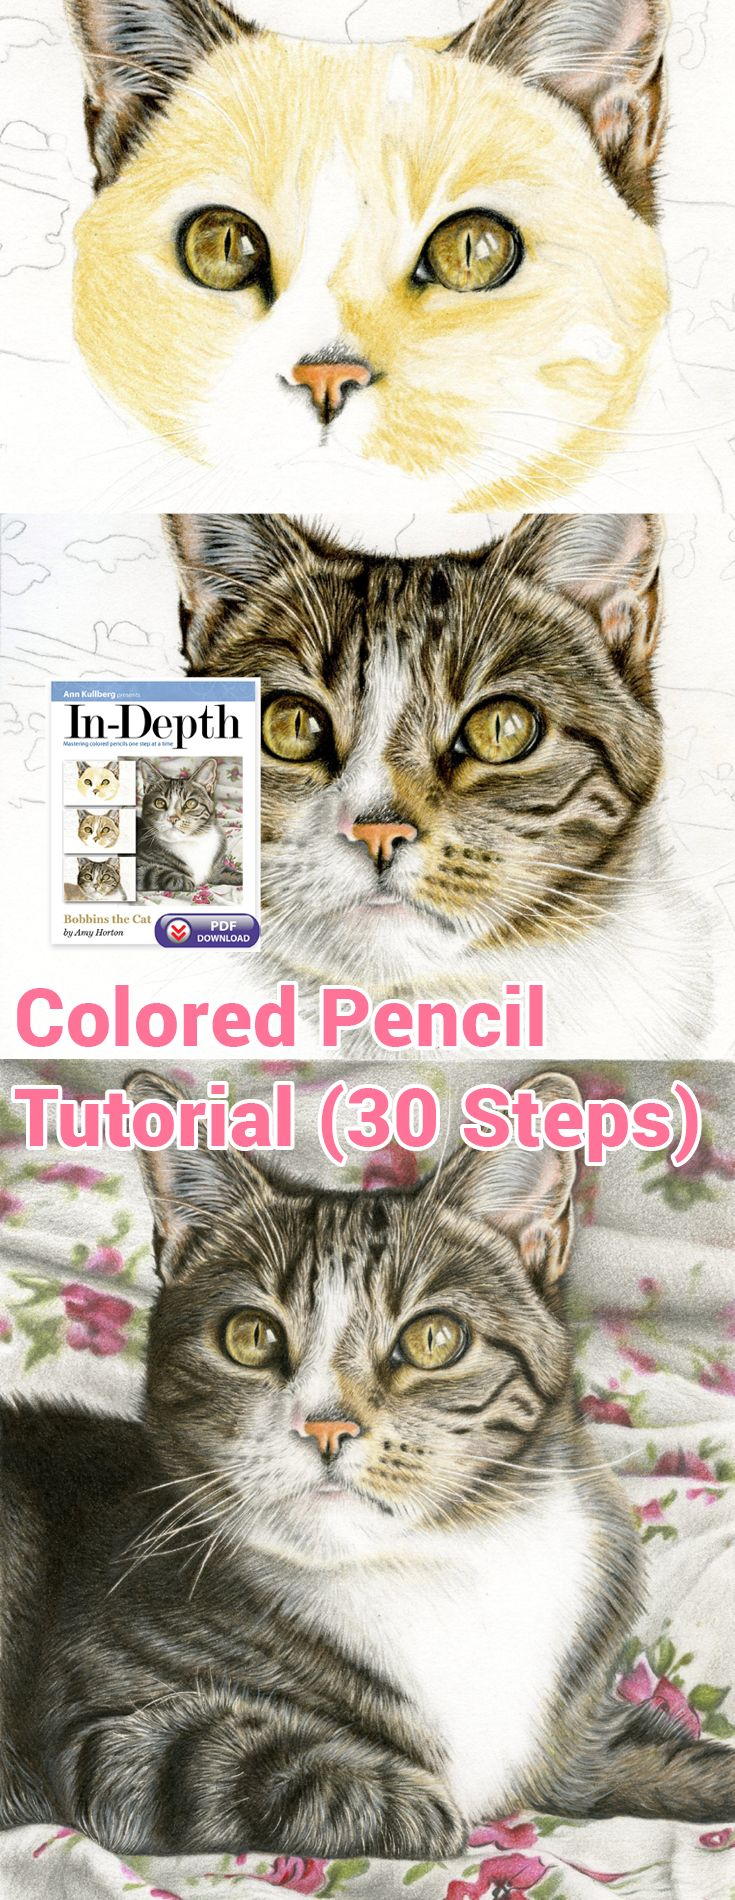 Bobbins the Cat is the purrr-fect way to kick start the new year. From step 1 to done, this In-Depth colored pencil tutorial will teach you life-like fur and whisker techniques.